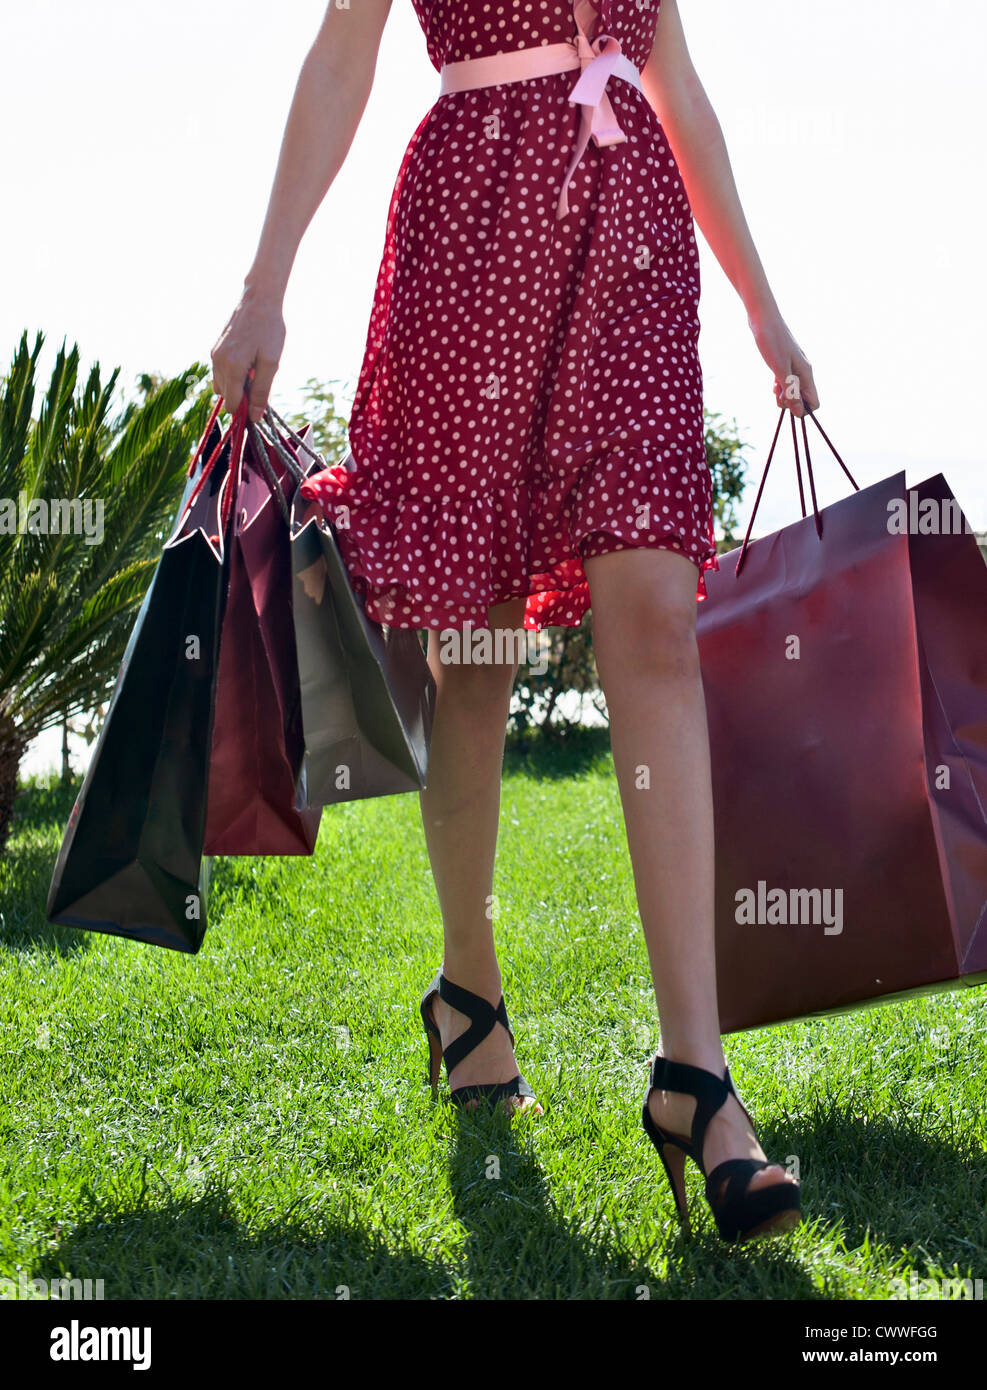 Woman carrying shopping bags in grass - Stock Image